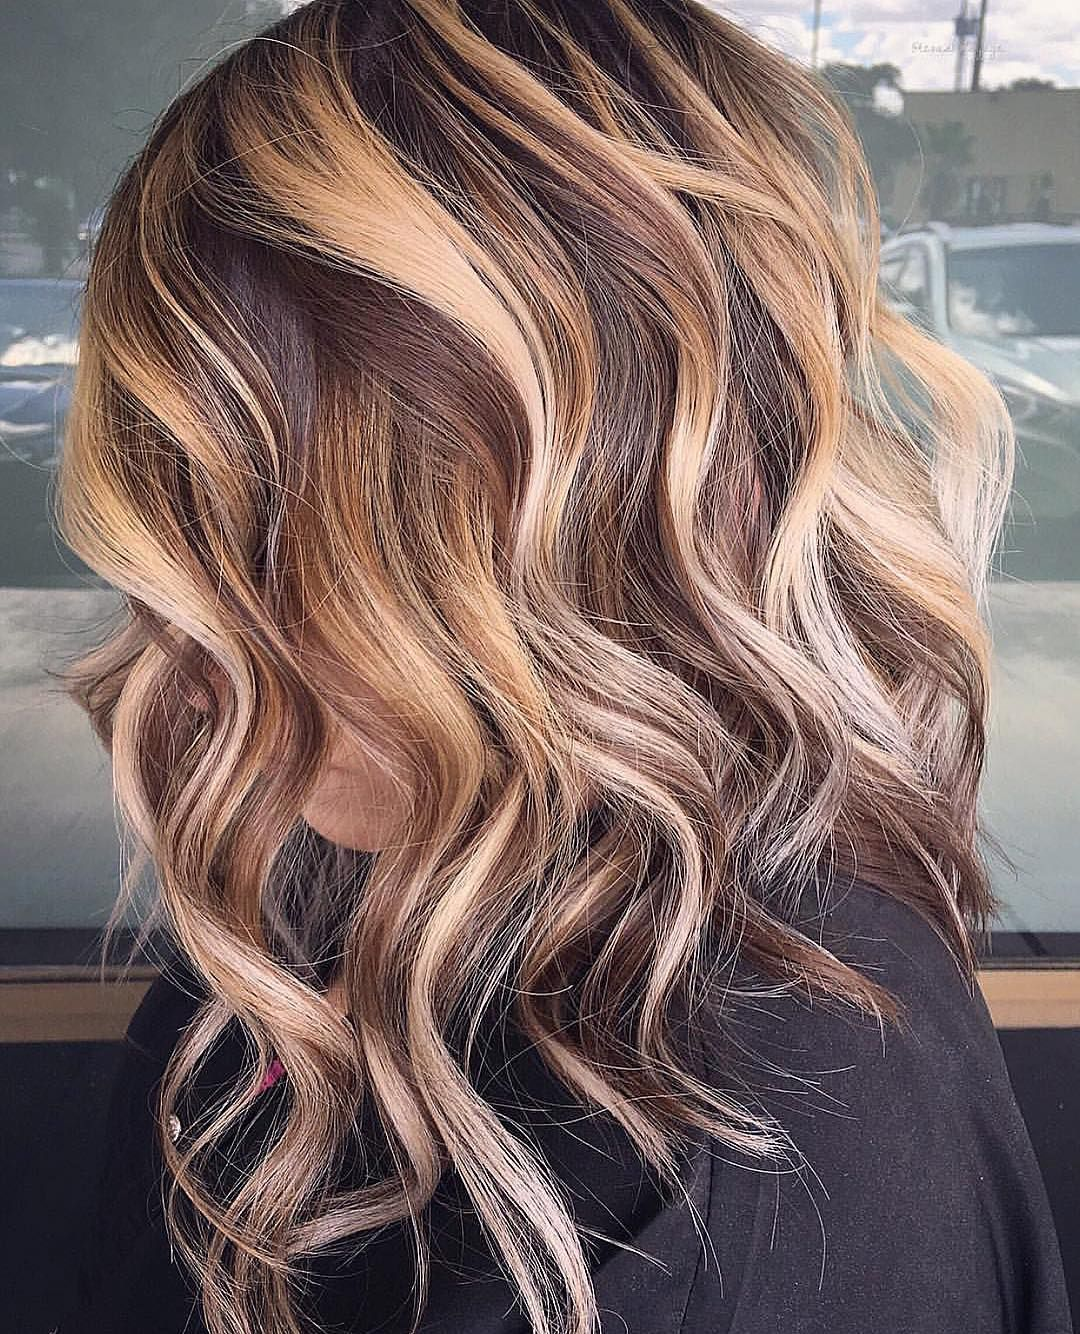 Trend Hair Styling Relaxed Trend Hair Style Pinterest Hair